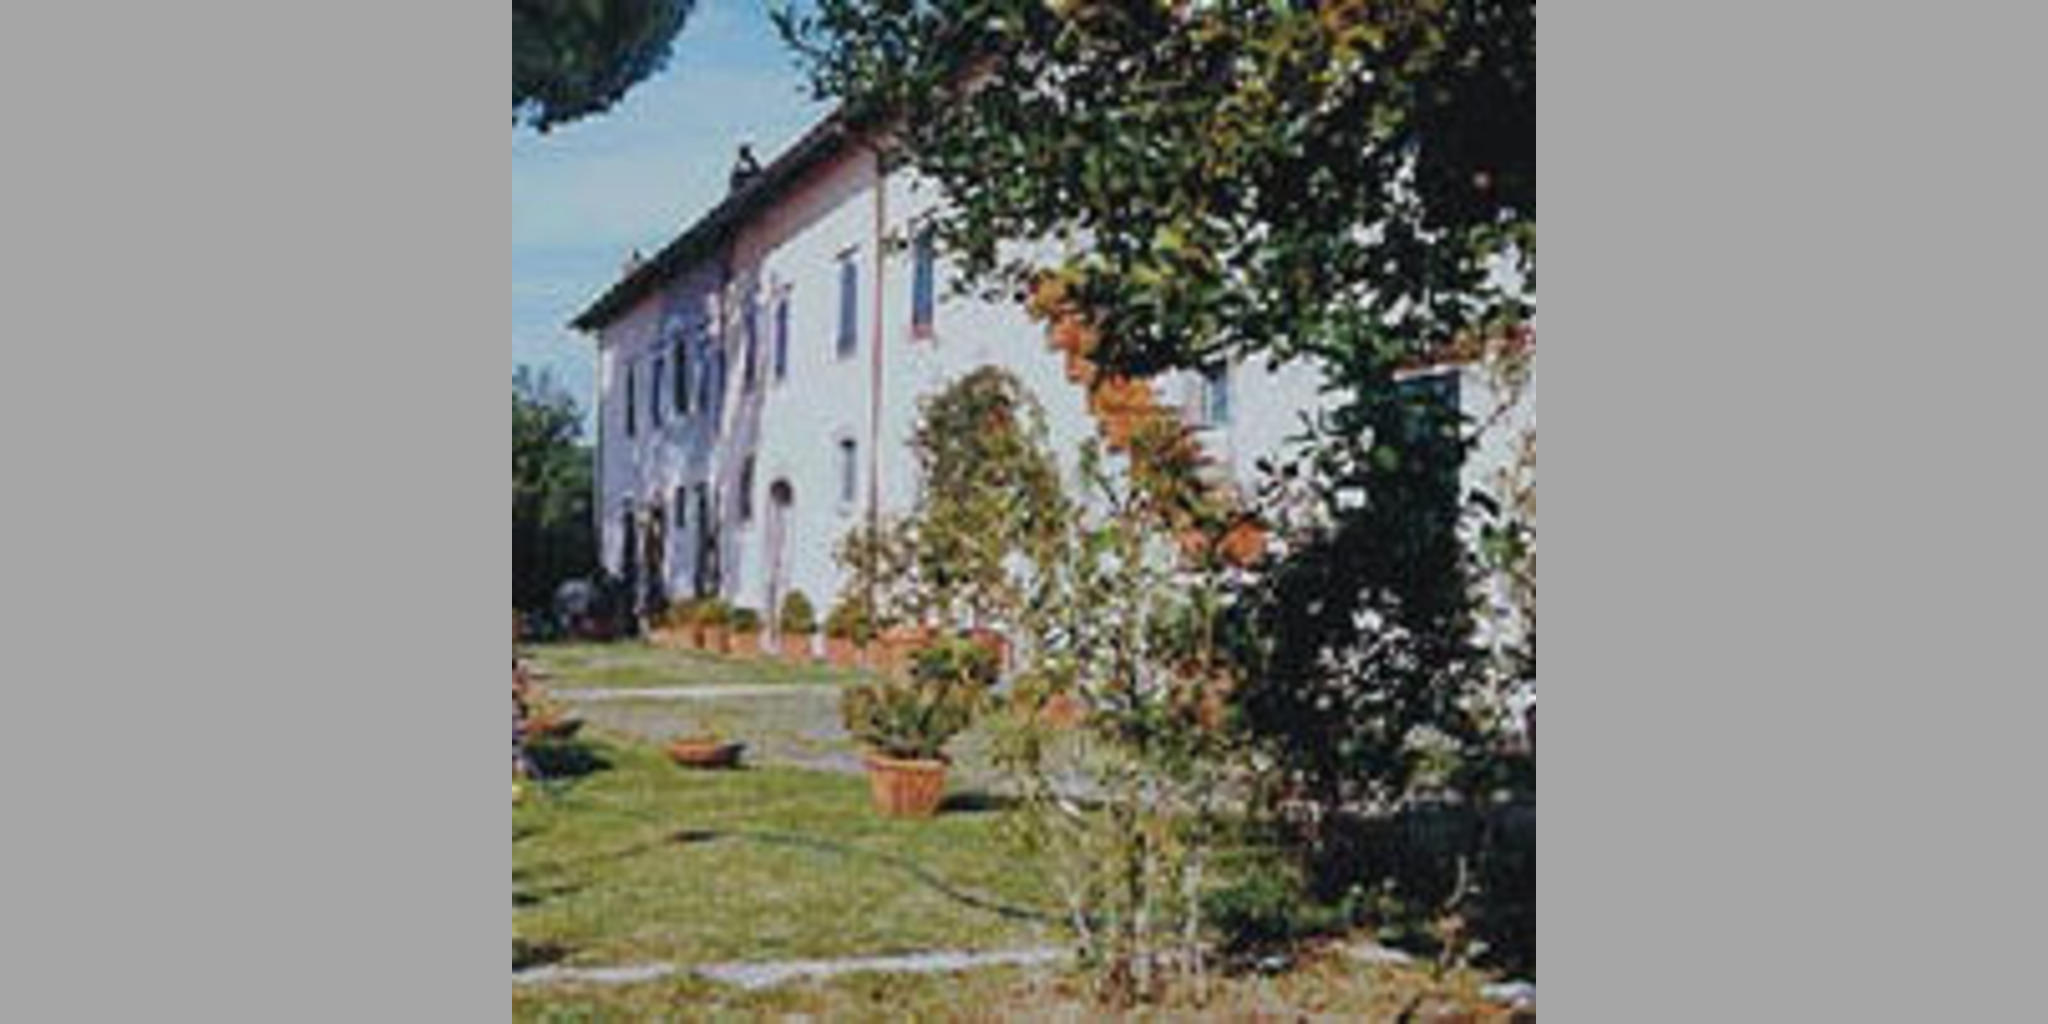 Bed & Breakfast Velletri - Acqua Lucia1